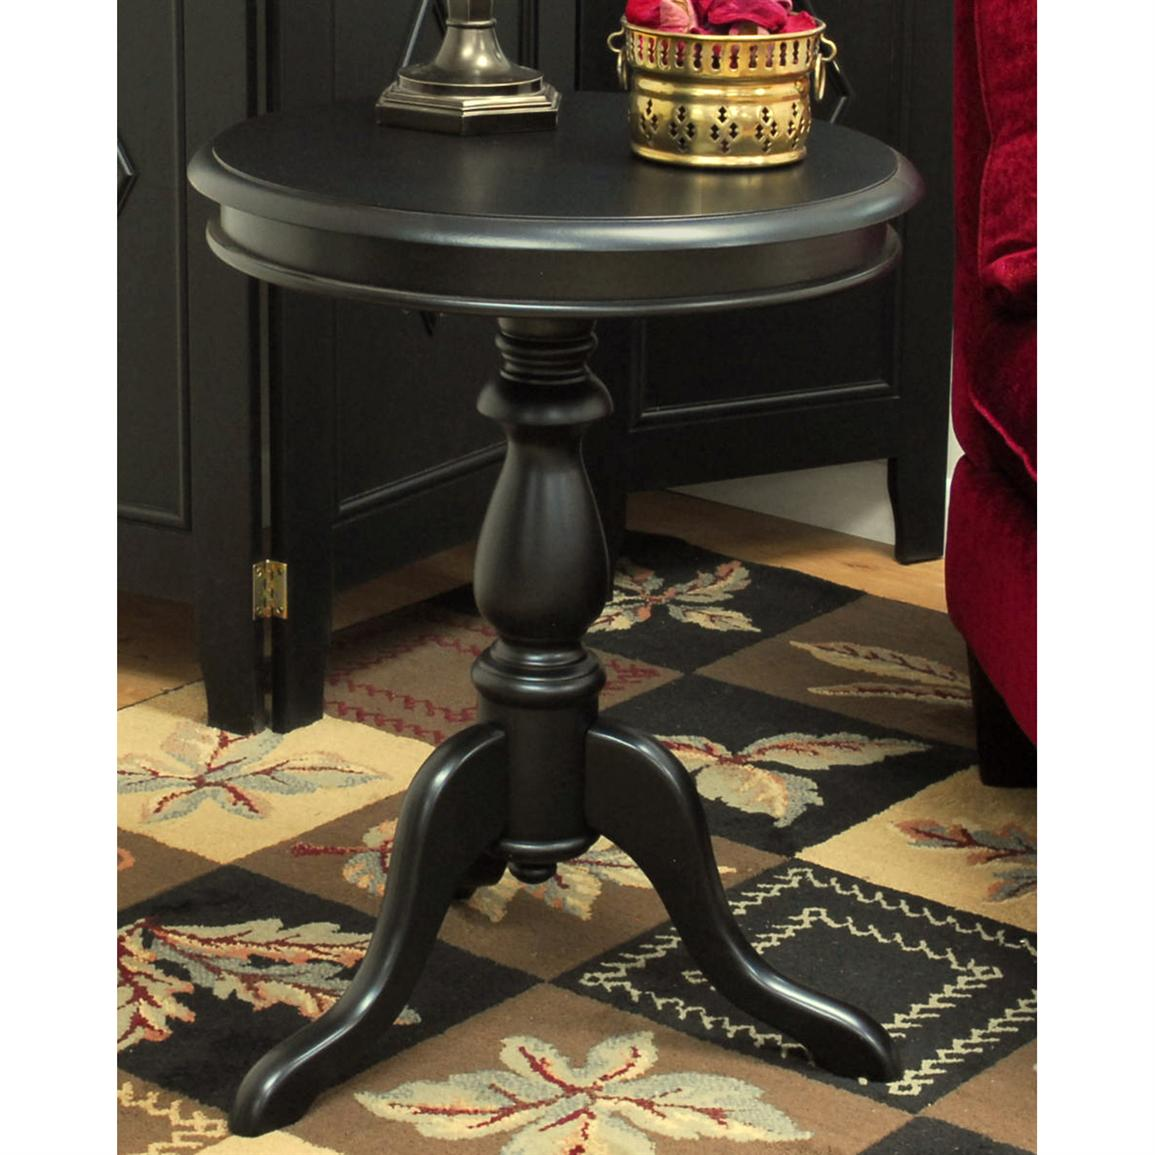 side table design the super unbelievable black round end build pedestal accent cole papers contemporary wall display cabinets elm furniture large plastic dog crate carson forge